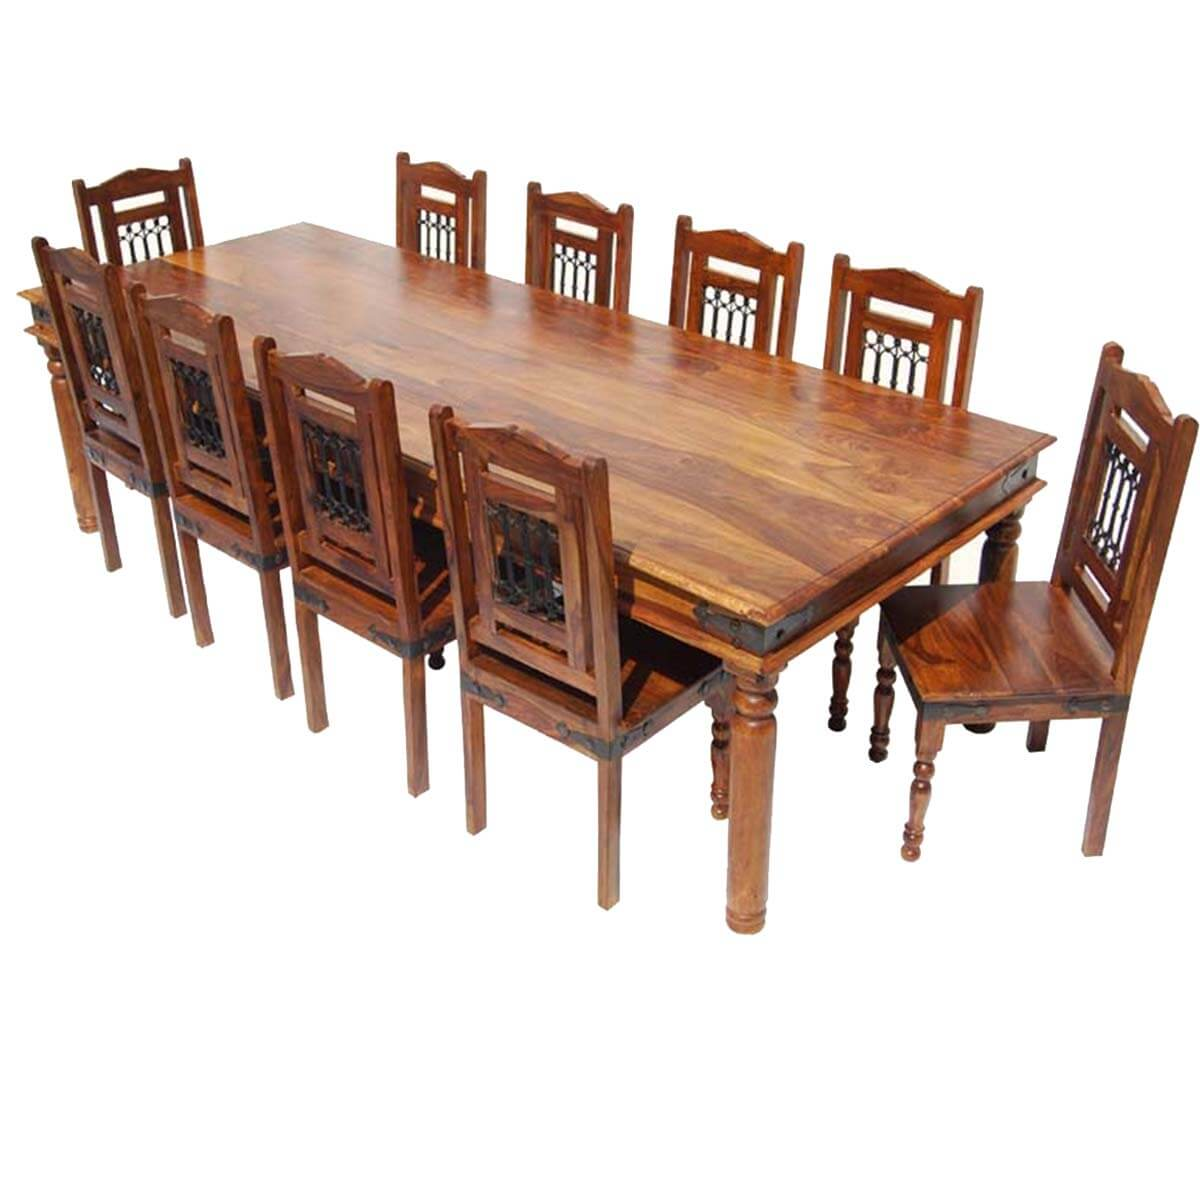 Home New Arrivals Solid Wood Large Rustic Dining Room Table Chair ...